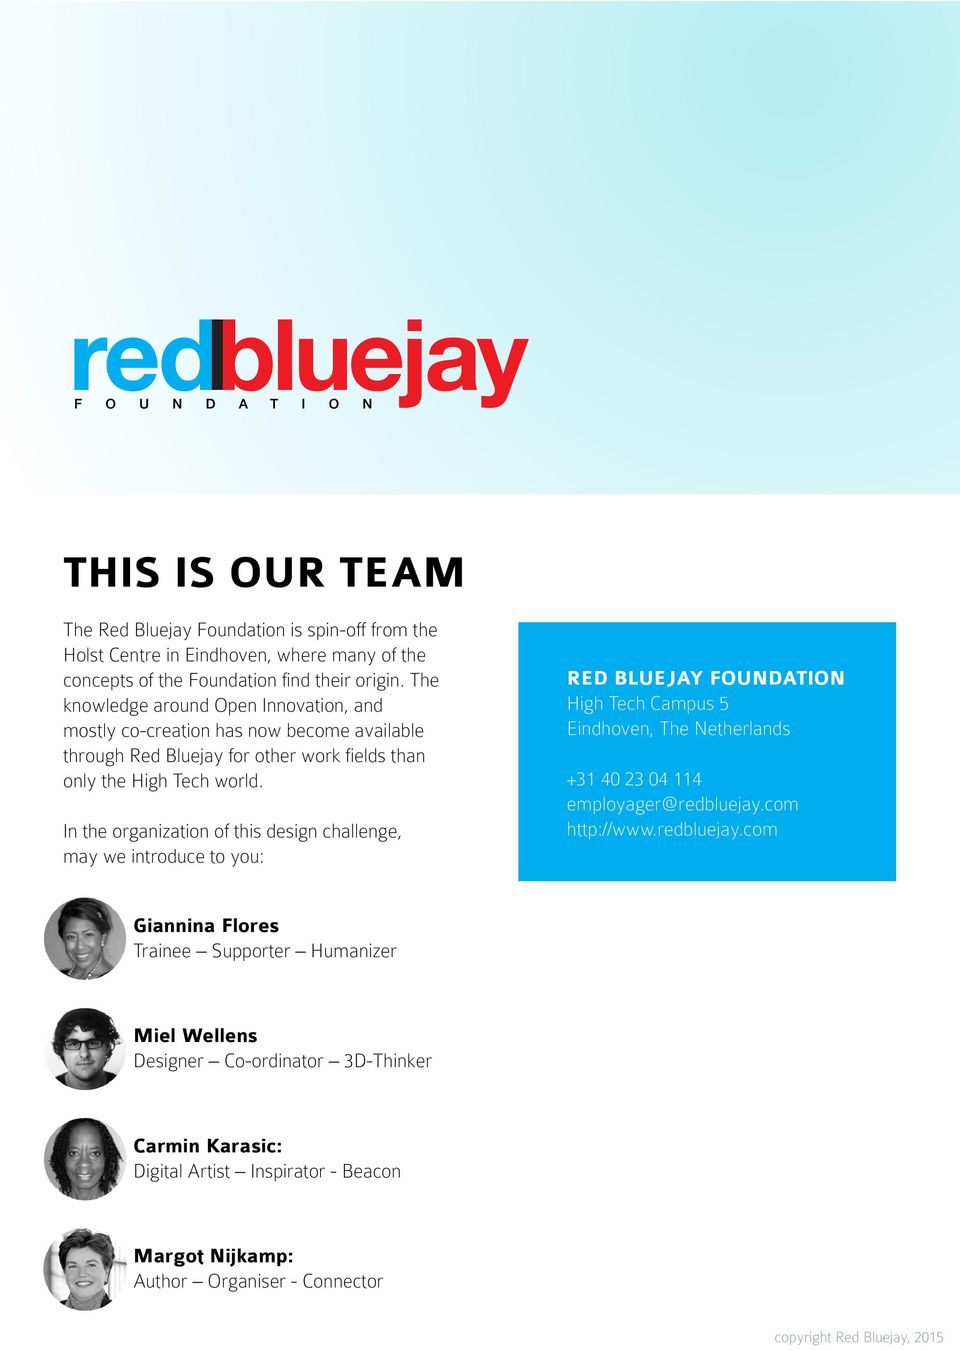 In the organization of this design challenge, may we introduce to you: RED BLUEJAY FOUNDATION High Tech Campus 5 Eindhoven, The Netherlands +31 40 23 04 114